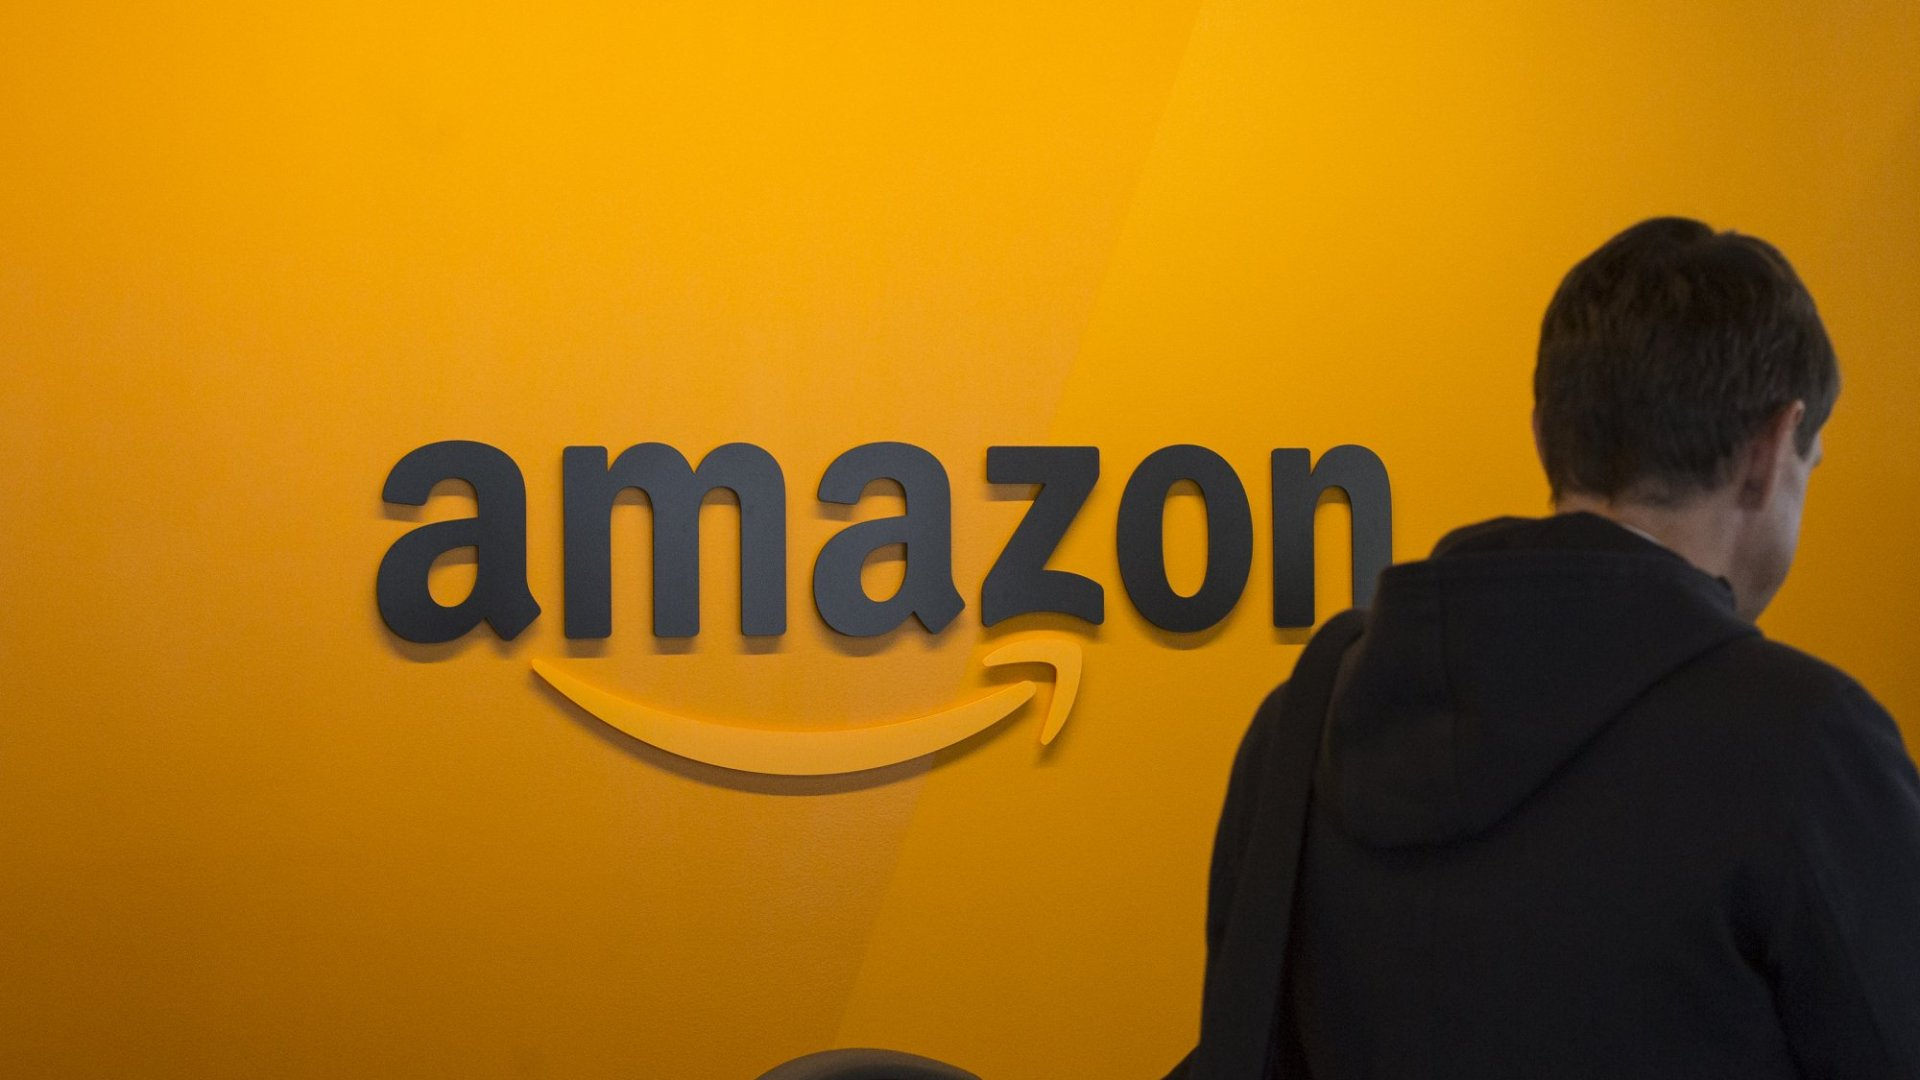 Amazon's '50 Percent Rule' Will Help You Avoid the 5 Biggest Interviewing and Hiring Mistakes